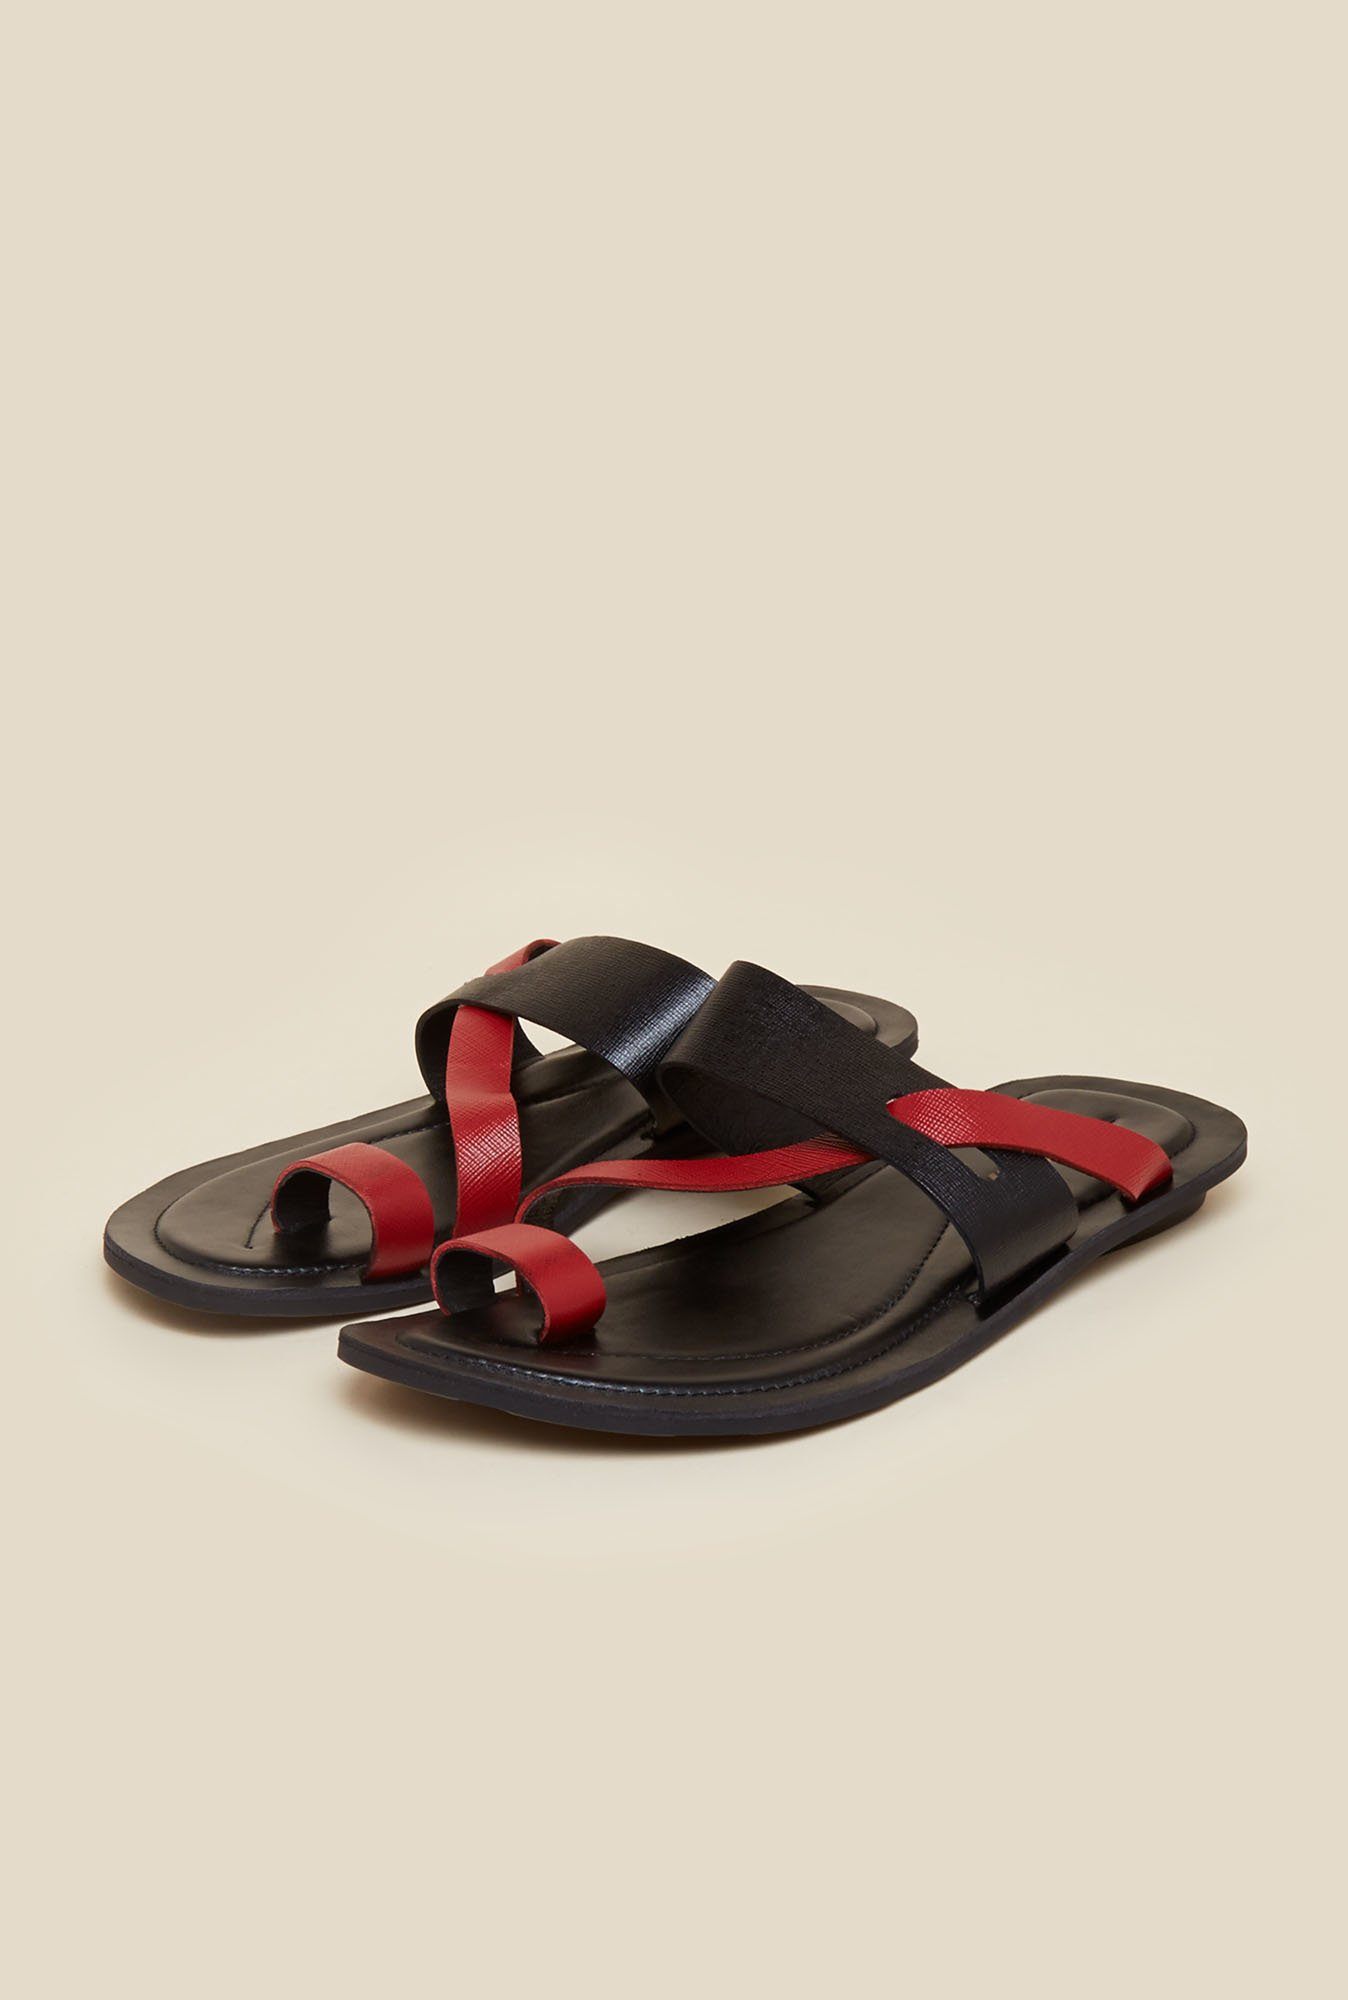 Mochi Black Leather Casual Sandals